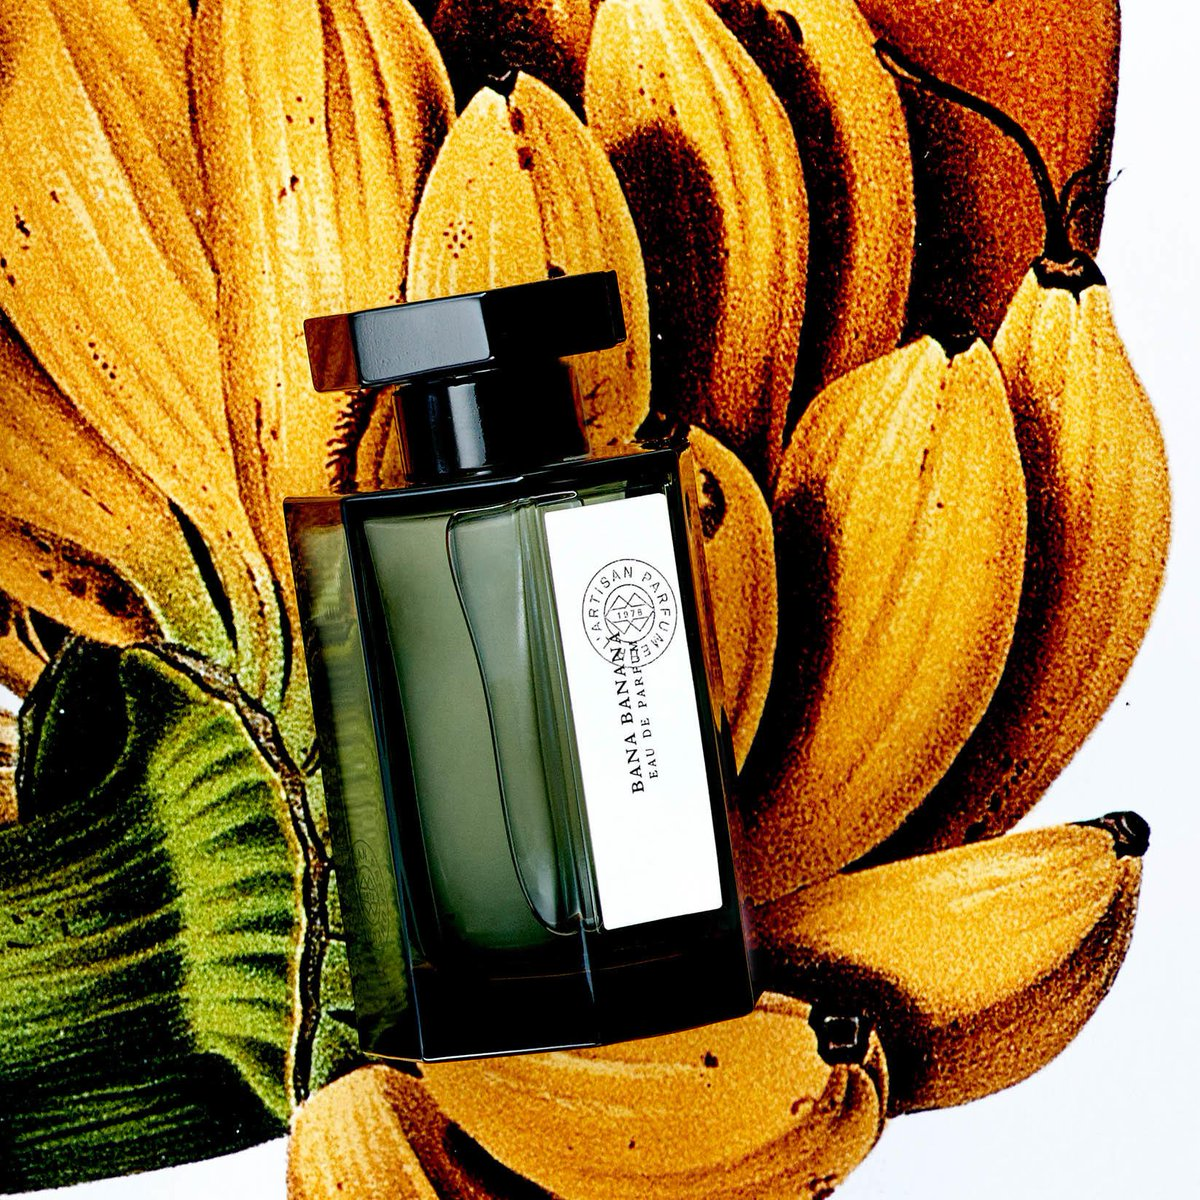 L'Artisan Parfumeur celebrates International Fragrance Day than with the launch of its newest fragrance, Bana Banana. An amber Banana - a rare, yet rich baroque-style composition - a blend of jasmine and candied bananas. #banabanana https://t.co/MX2Wp9BN1N https://t.co/zUqIKXqYqn